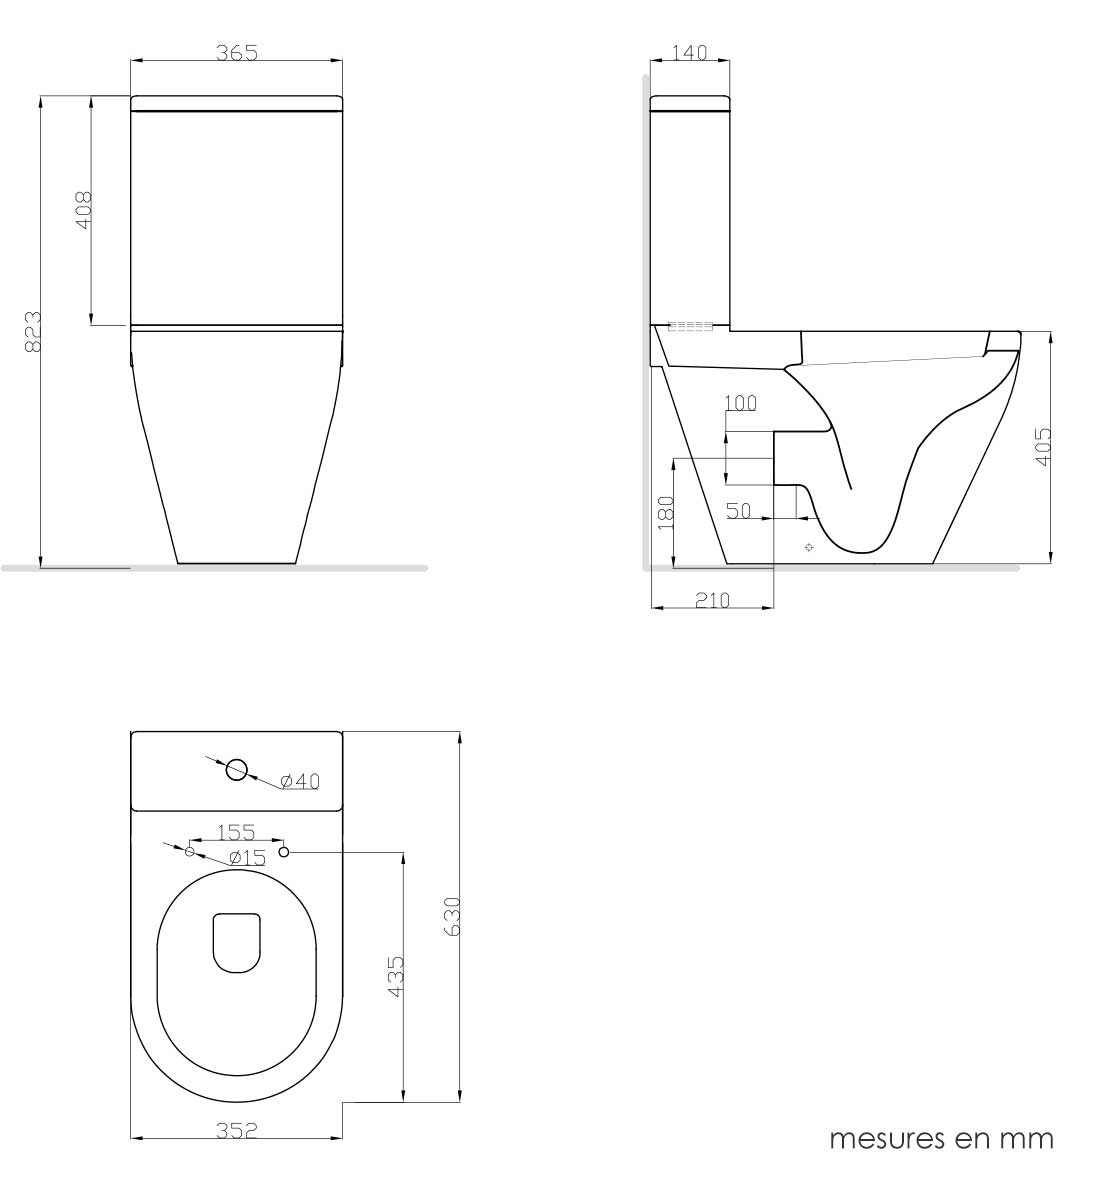 TECHNICAL DRAWING schema-wc-alix